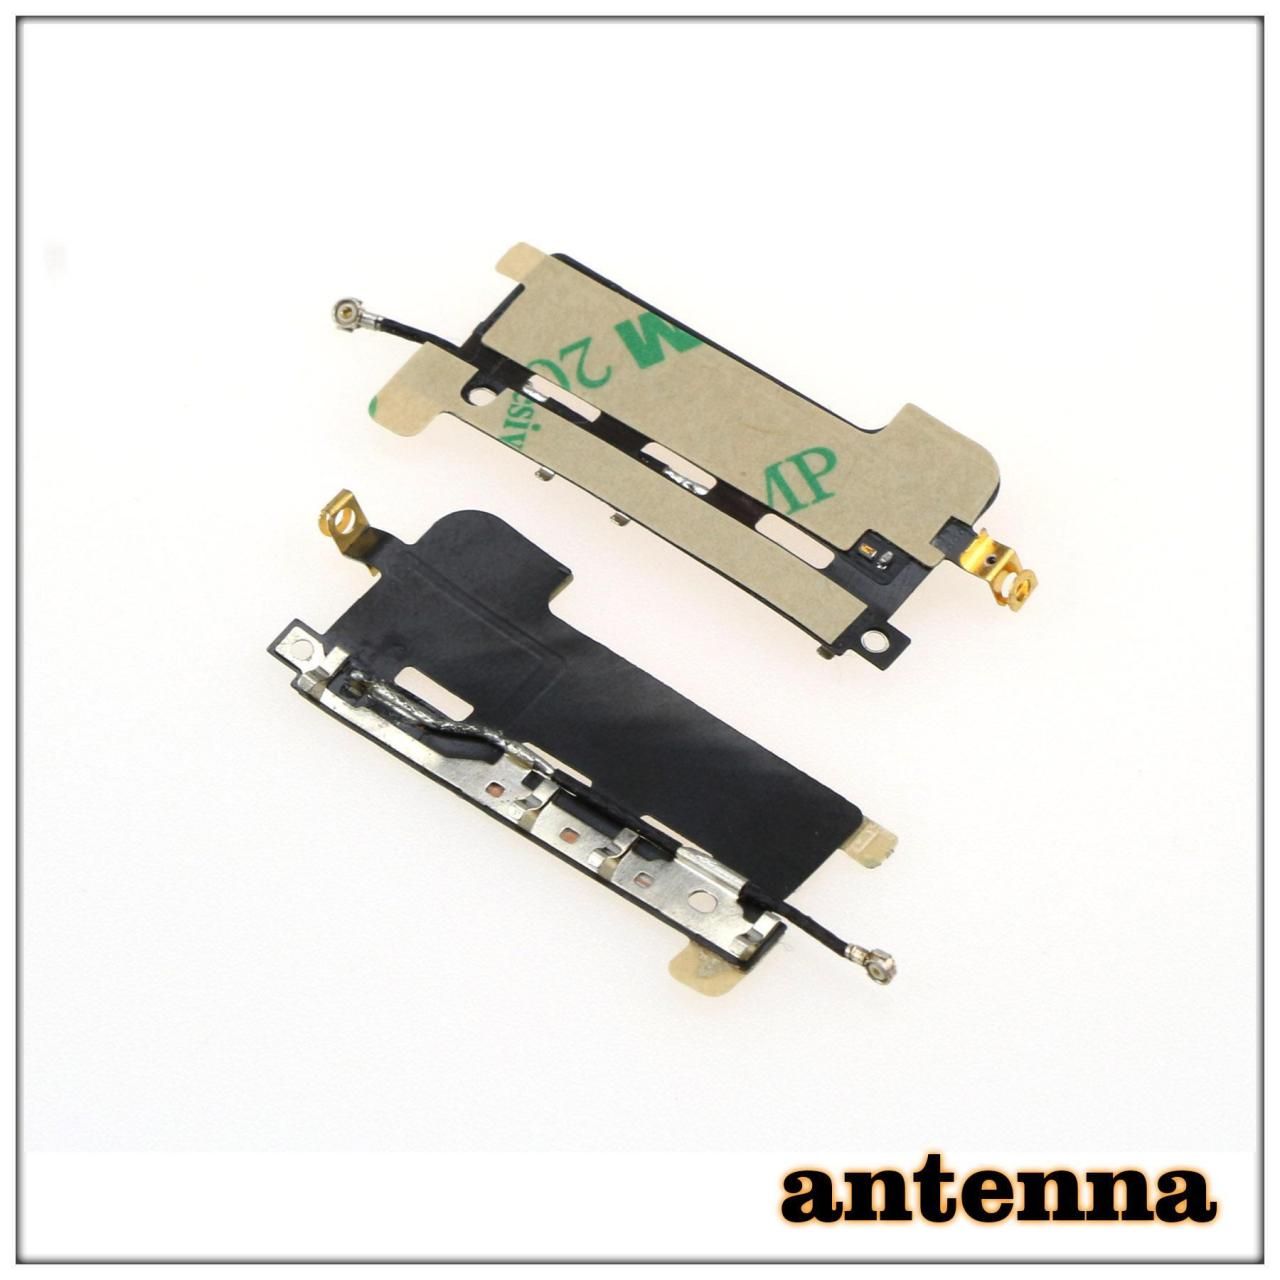 iPhone antenna Parts inside iPhone